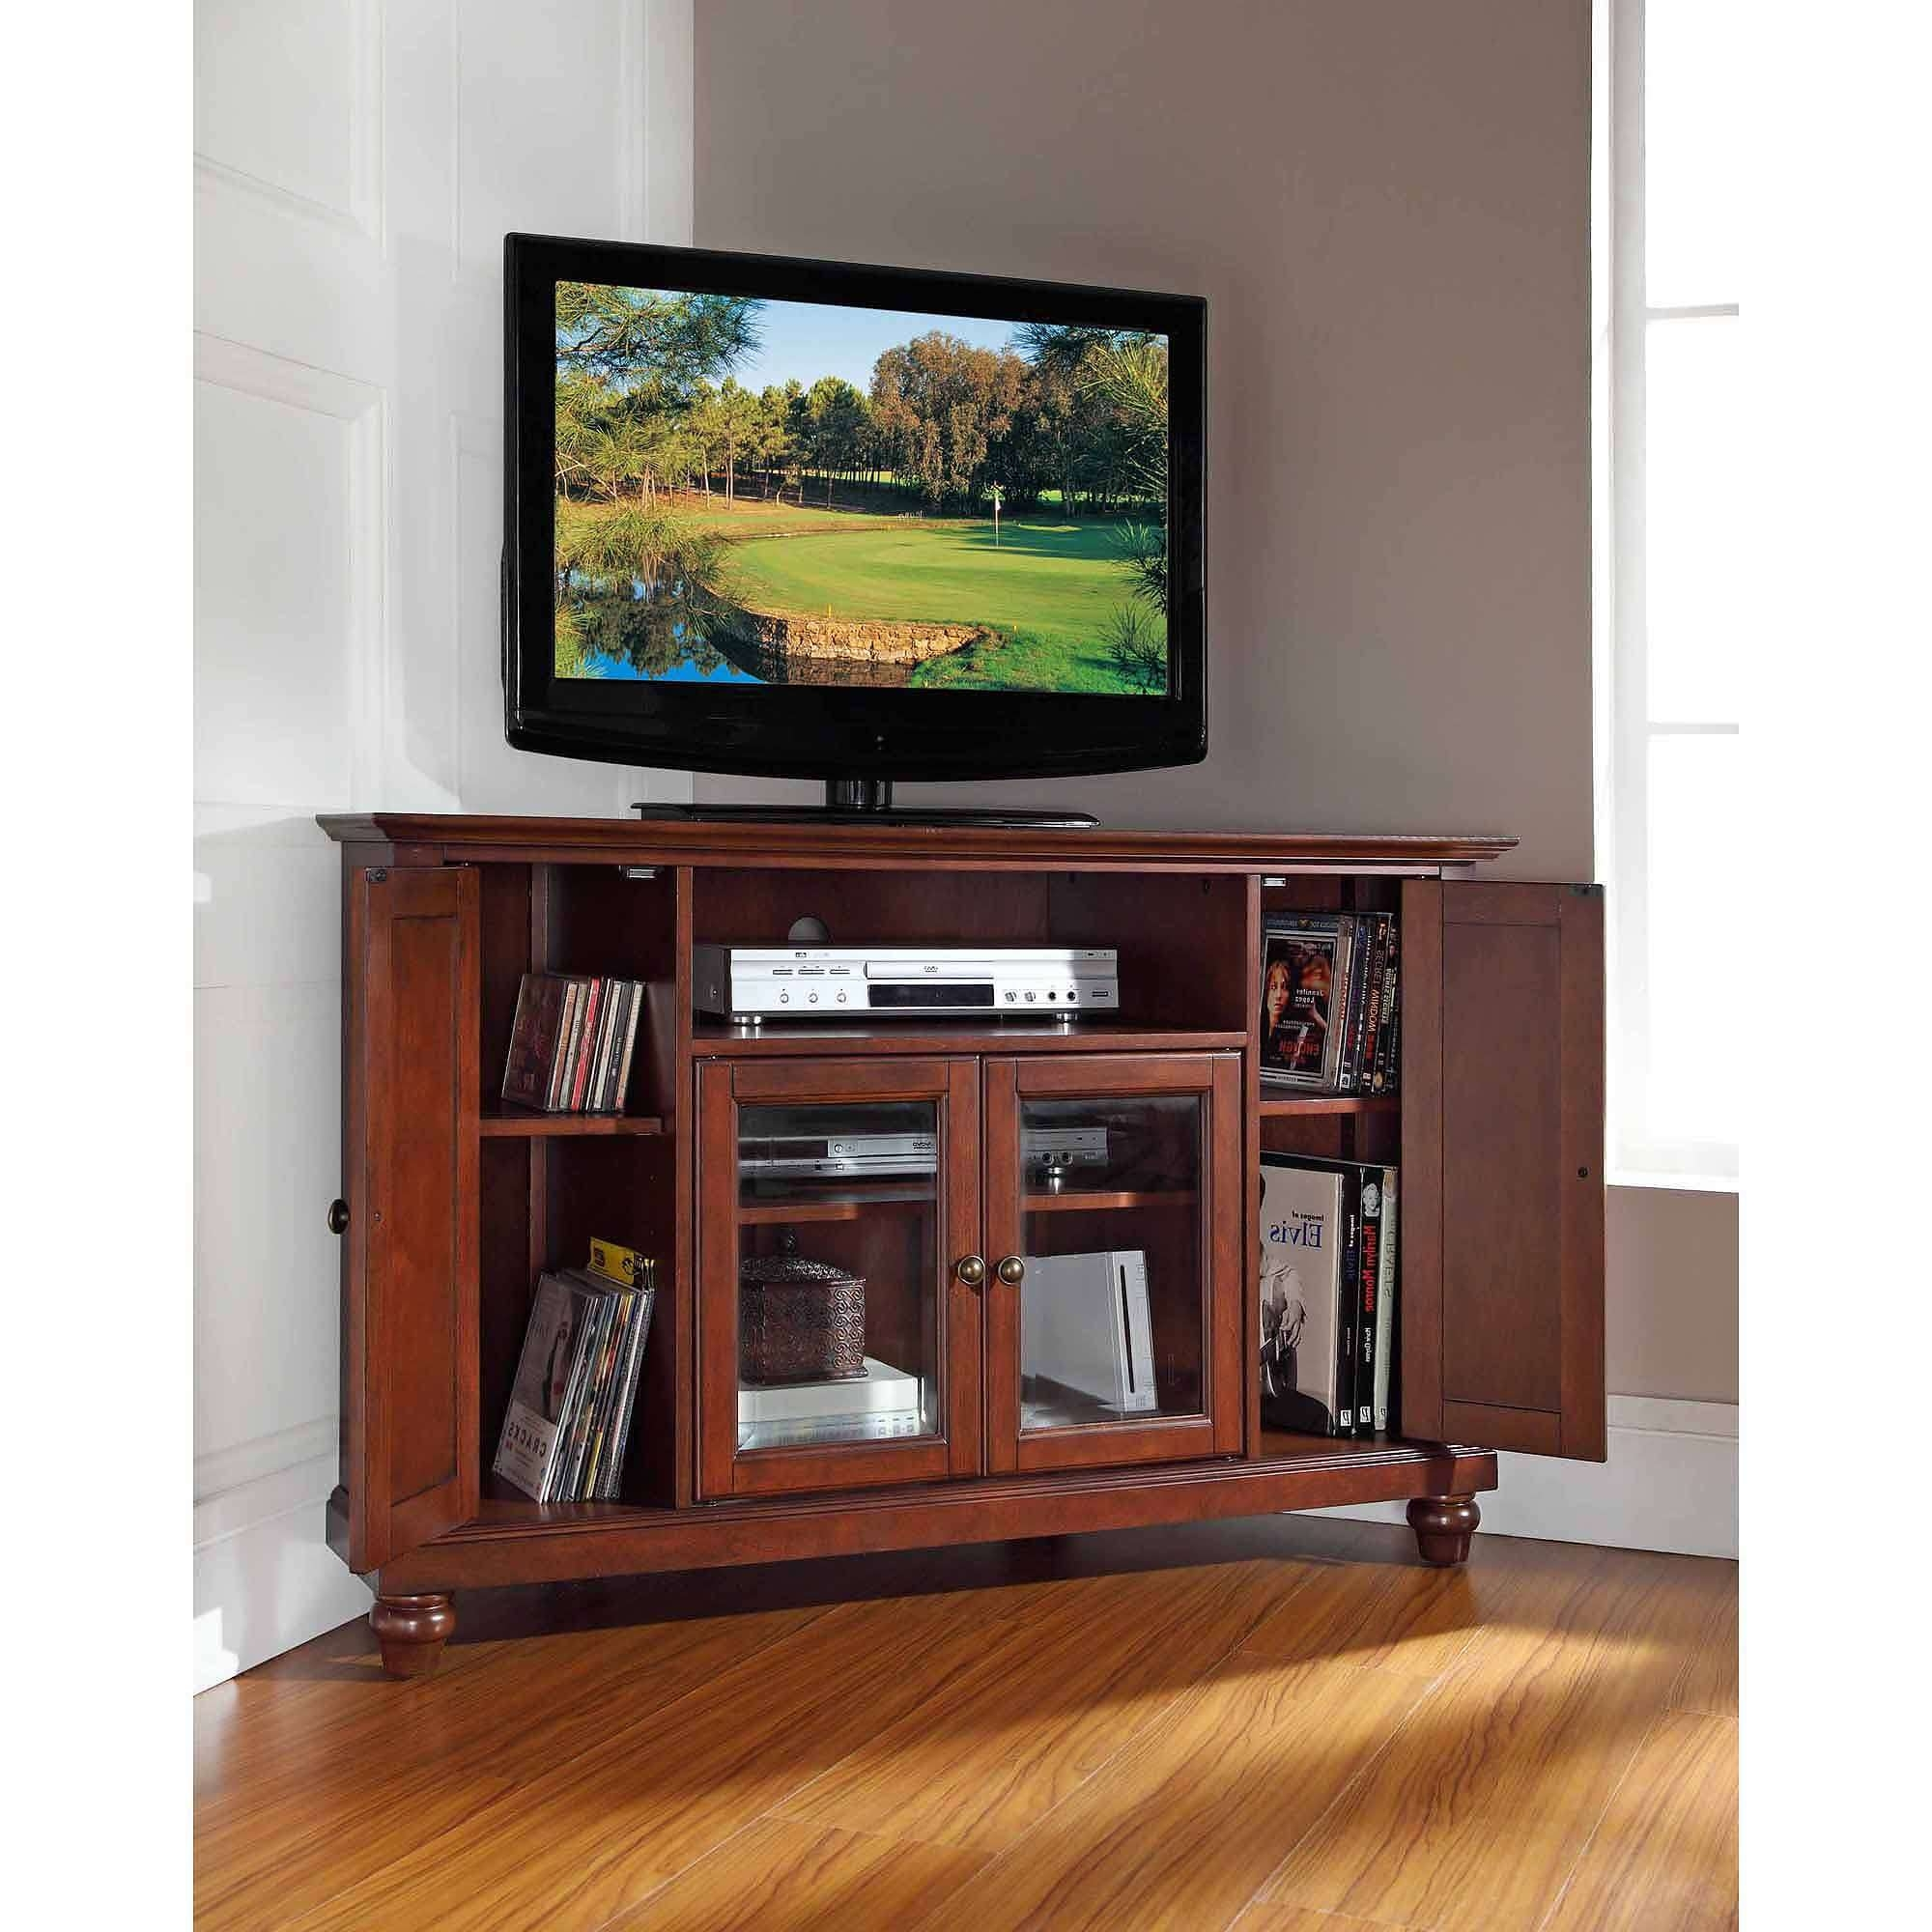 Tv : 41 Stunning 40 Inch Tv Stand Wood Photos Concept Stunning With Regard To Real Wood Corner Tv Stands (View 12 of 15)